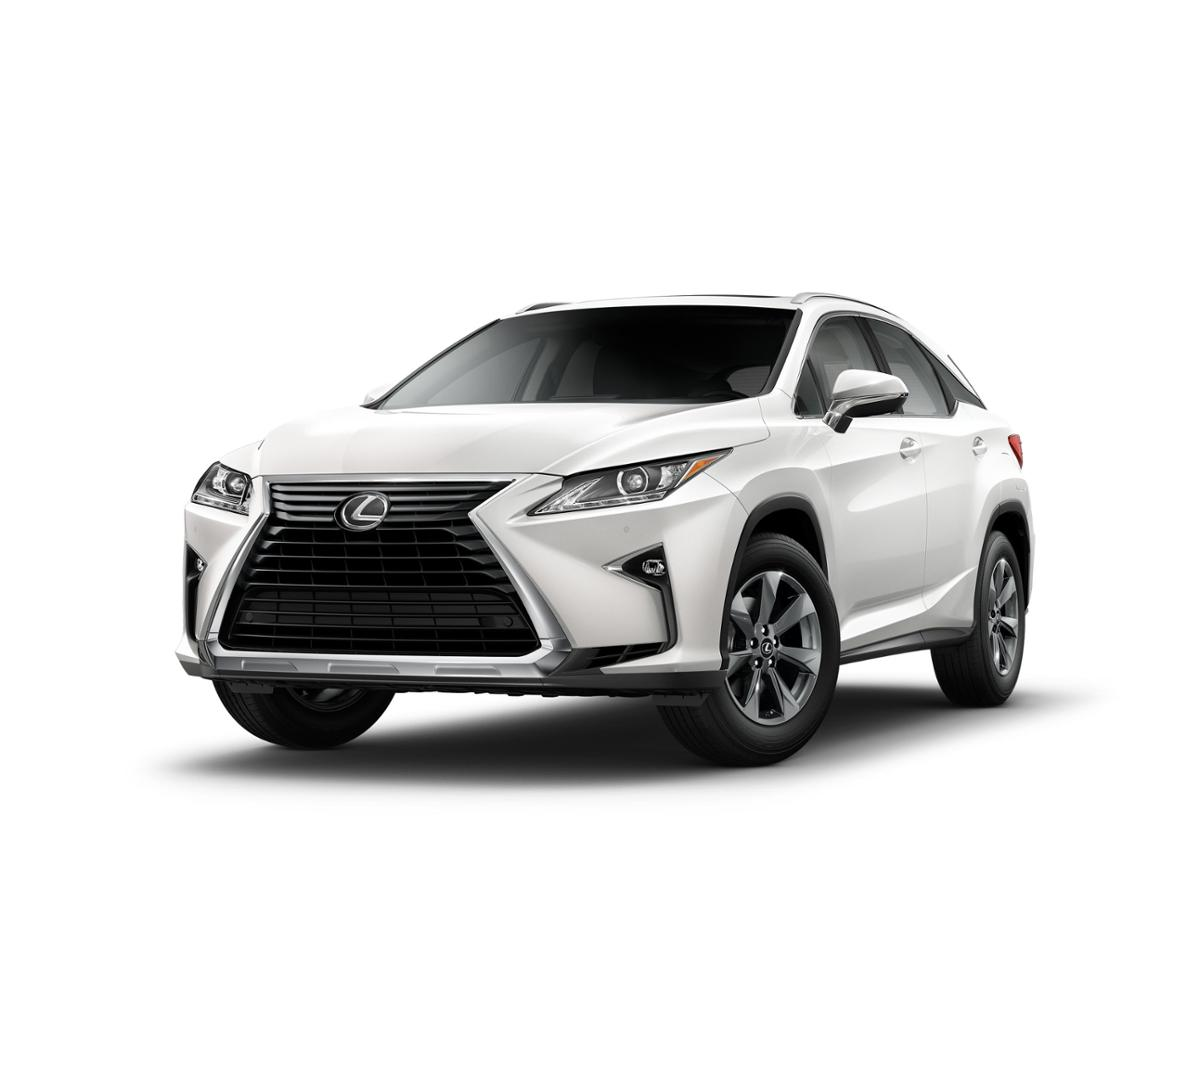 2018 Lexus RX 350 Vehicle Photo in Mission Viejo, CA 92692